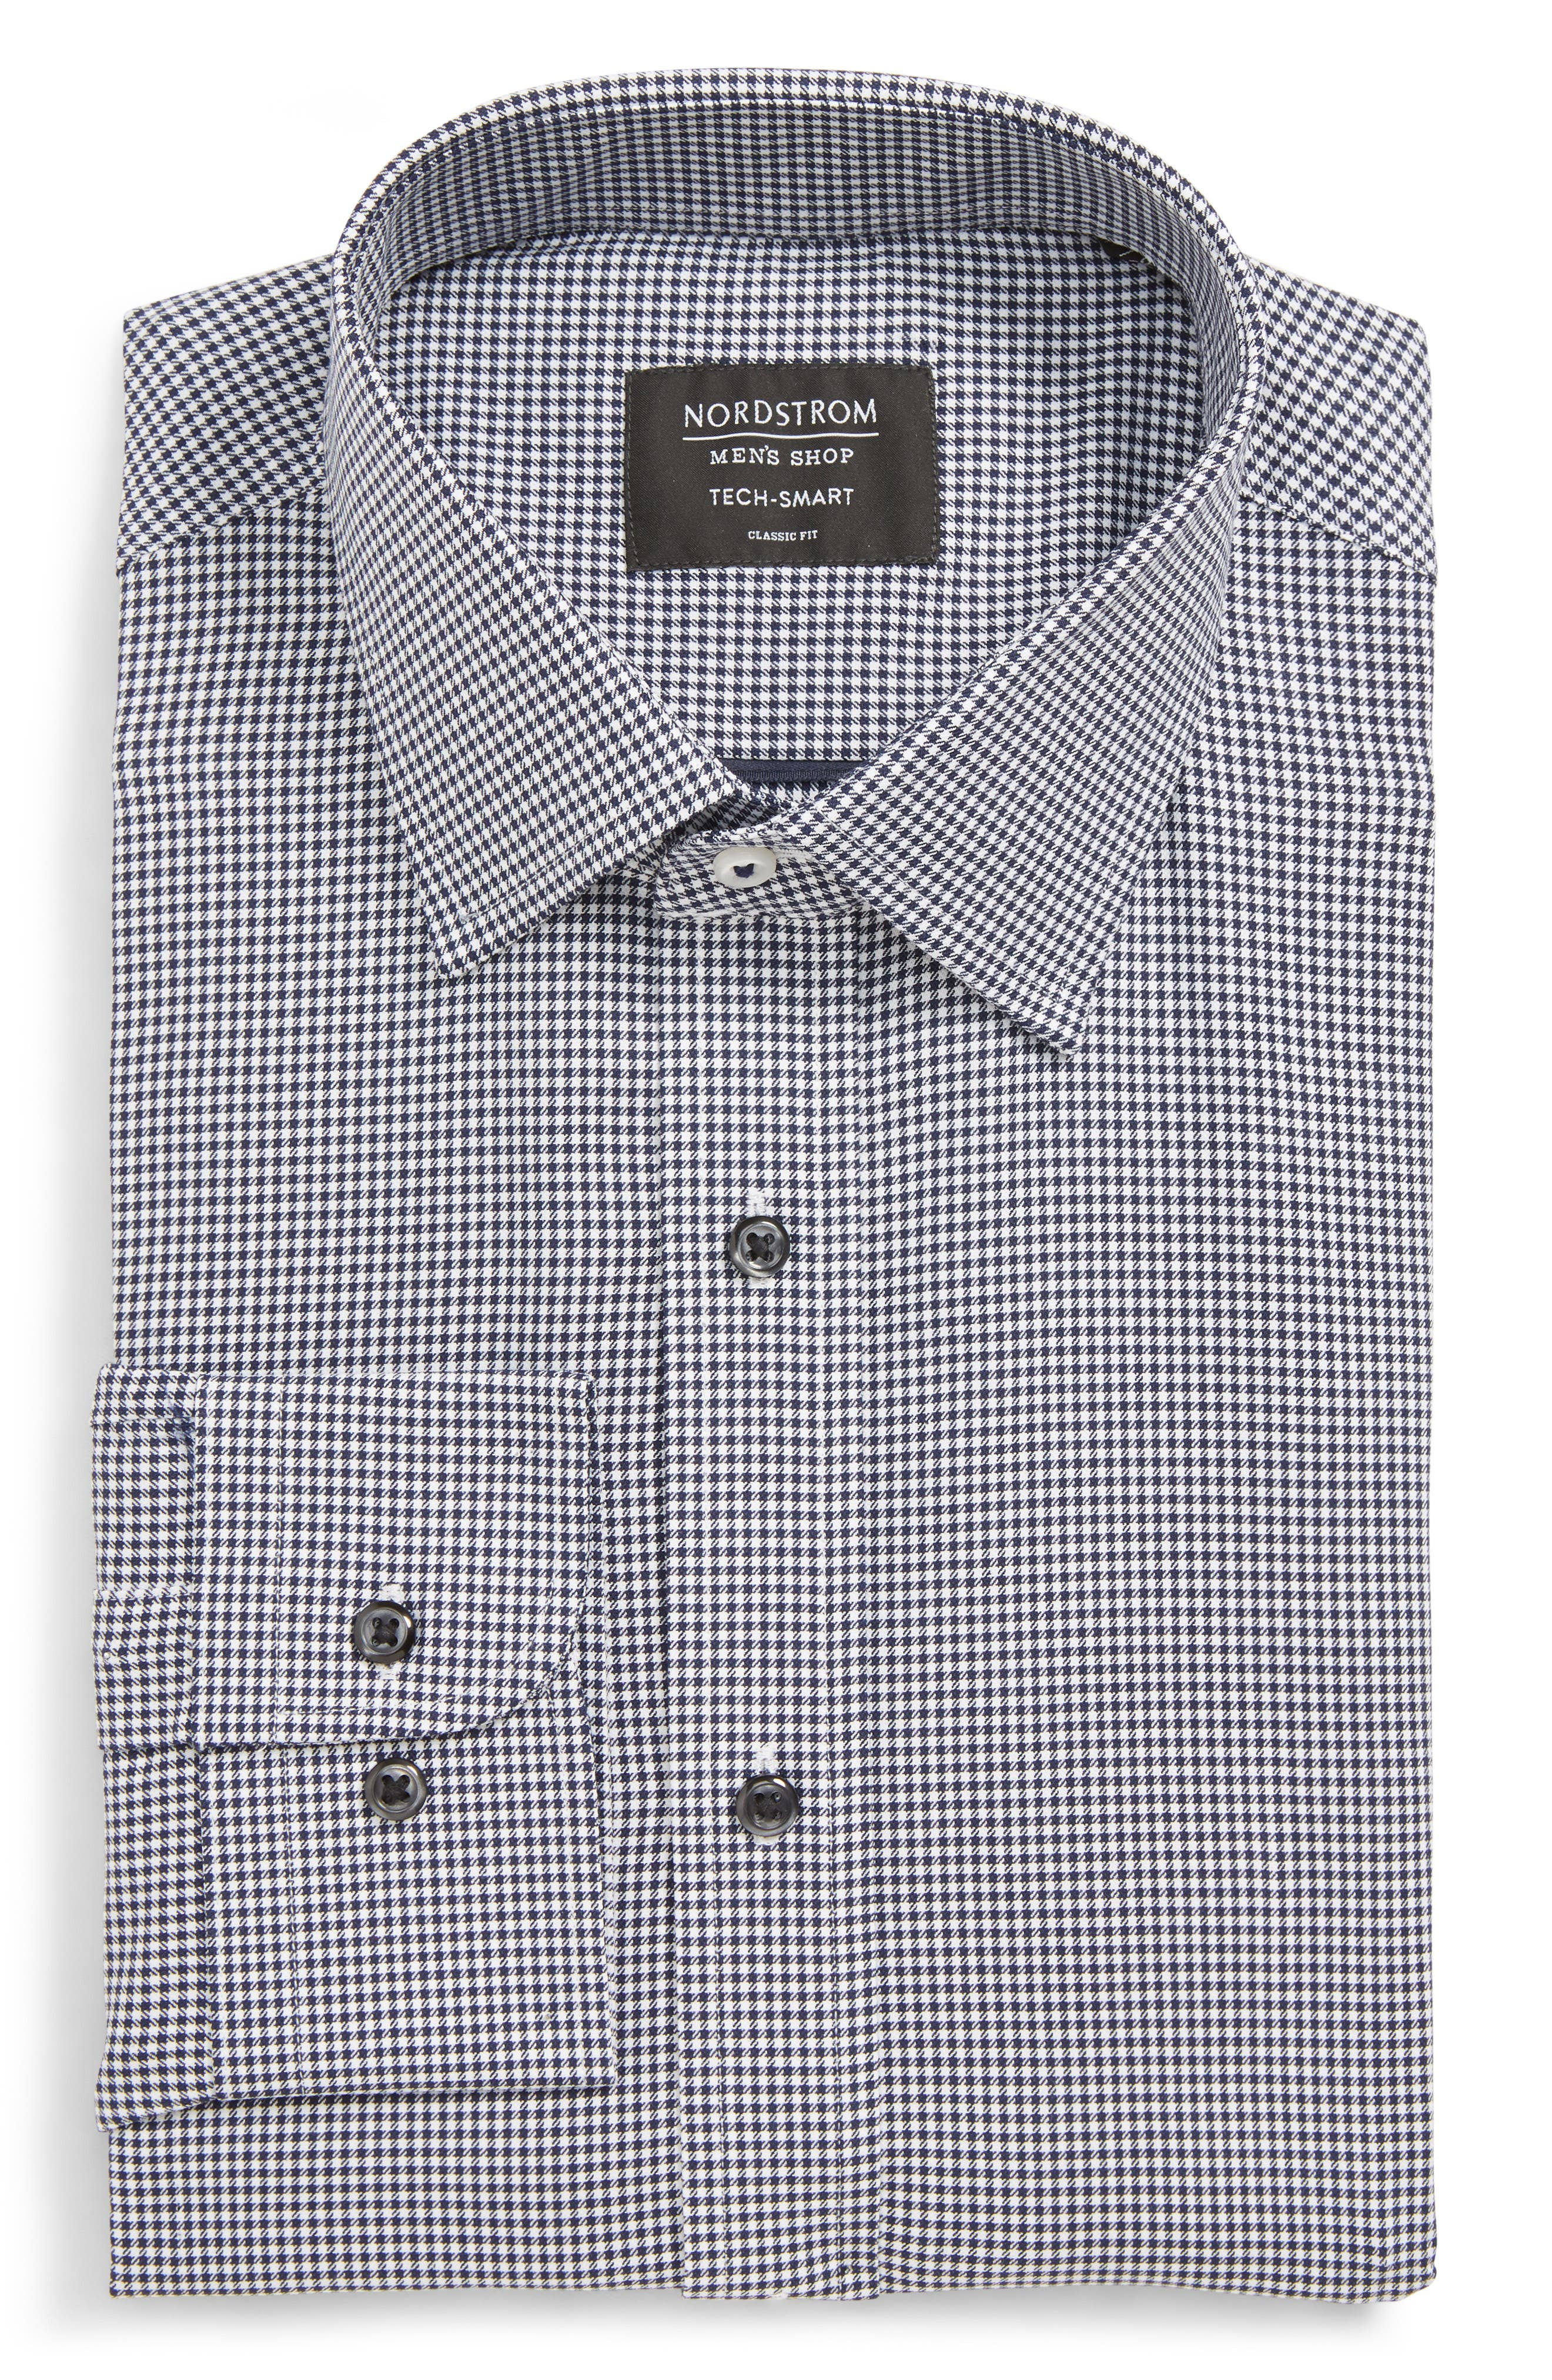 Tech-Smart Classic Fit Stretch Check Dress Shirt,                         Main,                         color, NAVY PEACOAT